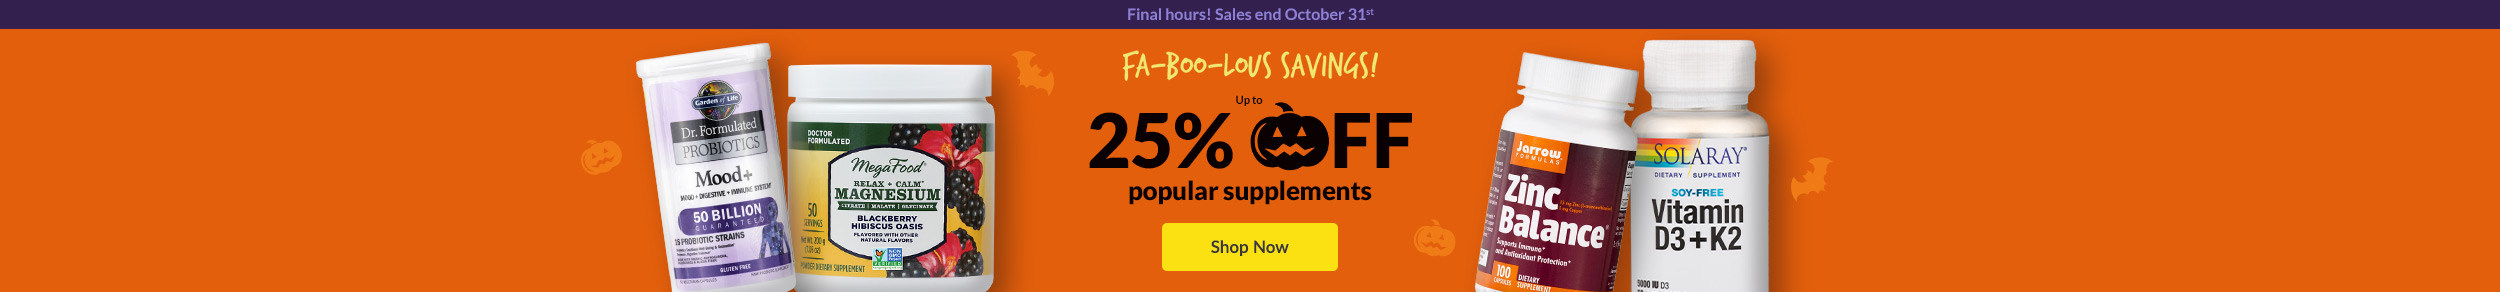 Final hours! Sales ends October 31st!FA-BOO-LOUS SAVINGS! Up to 25% OFF popular supplements. SHOP NOW!